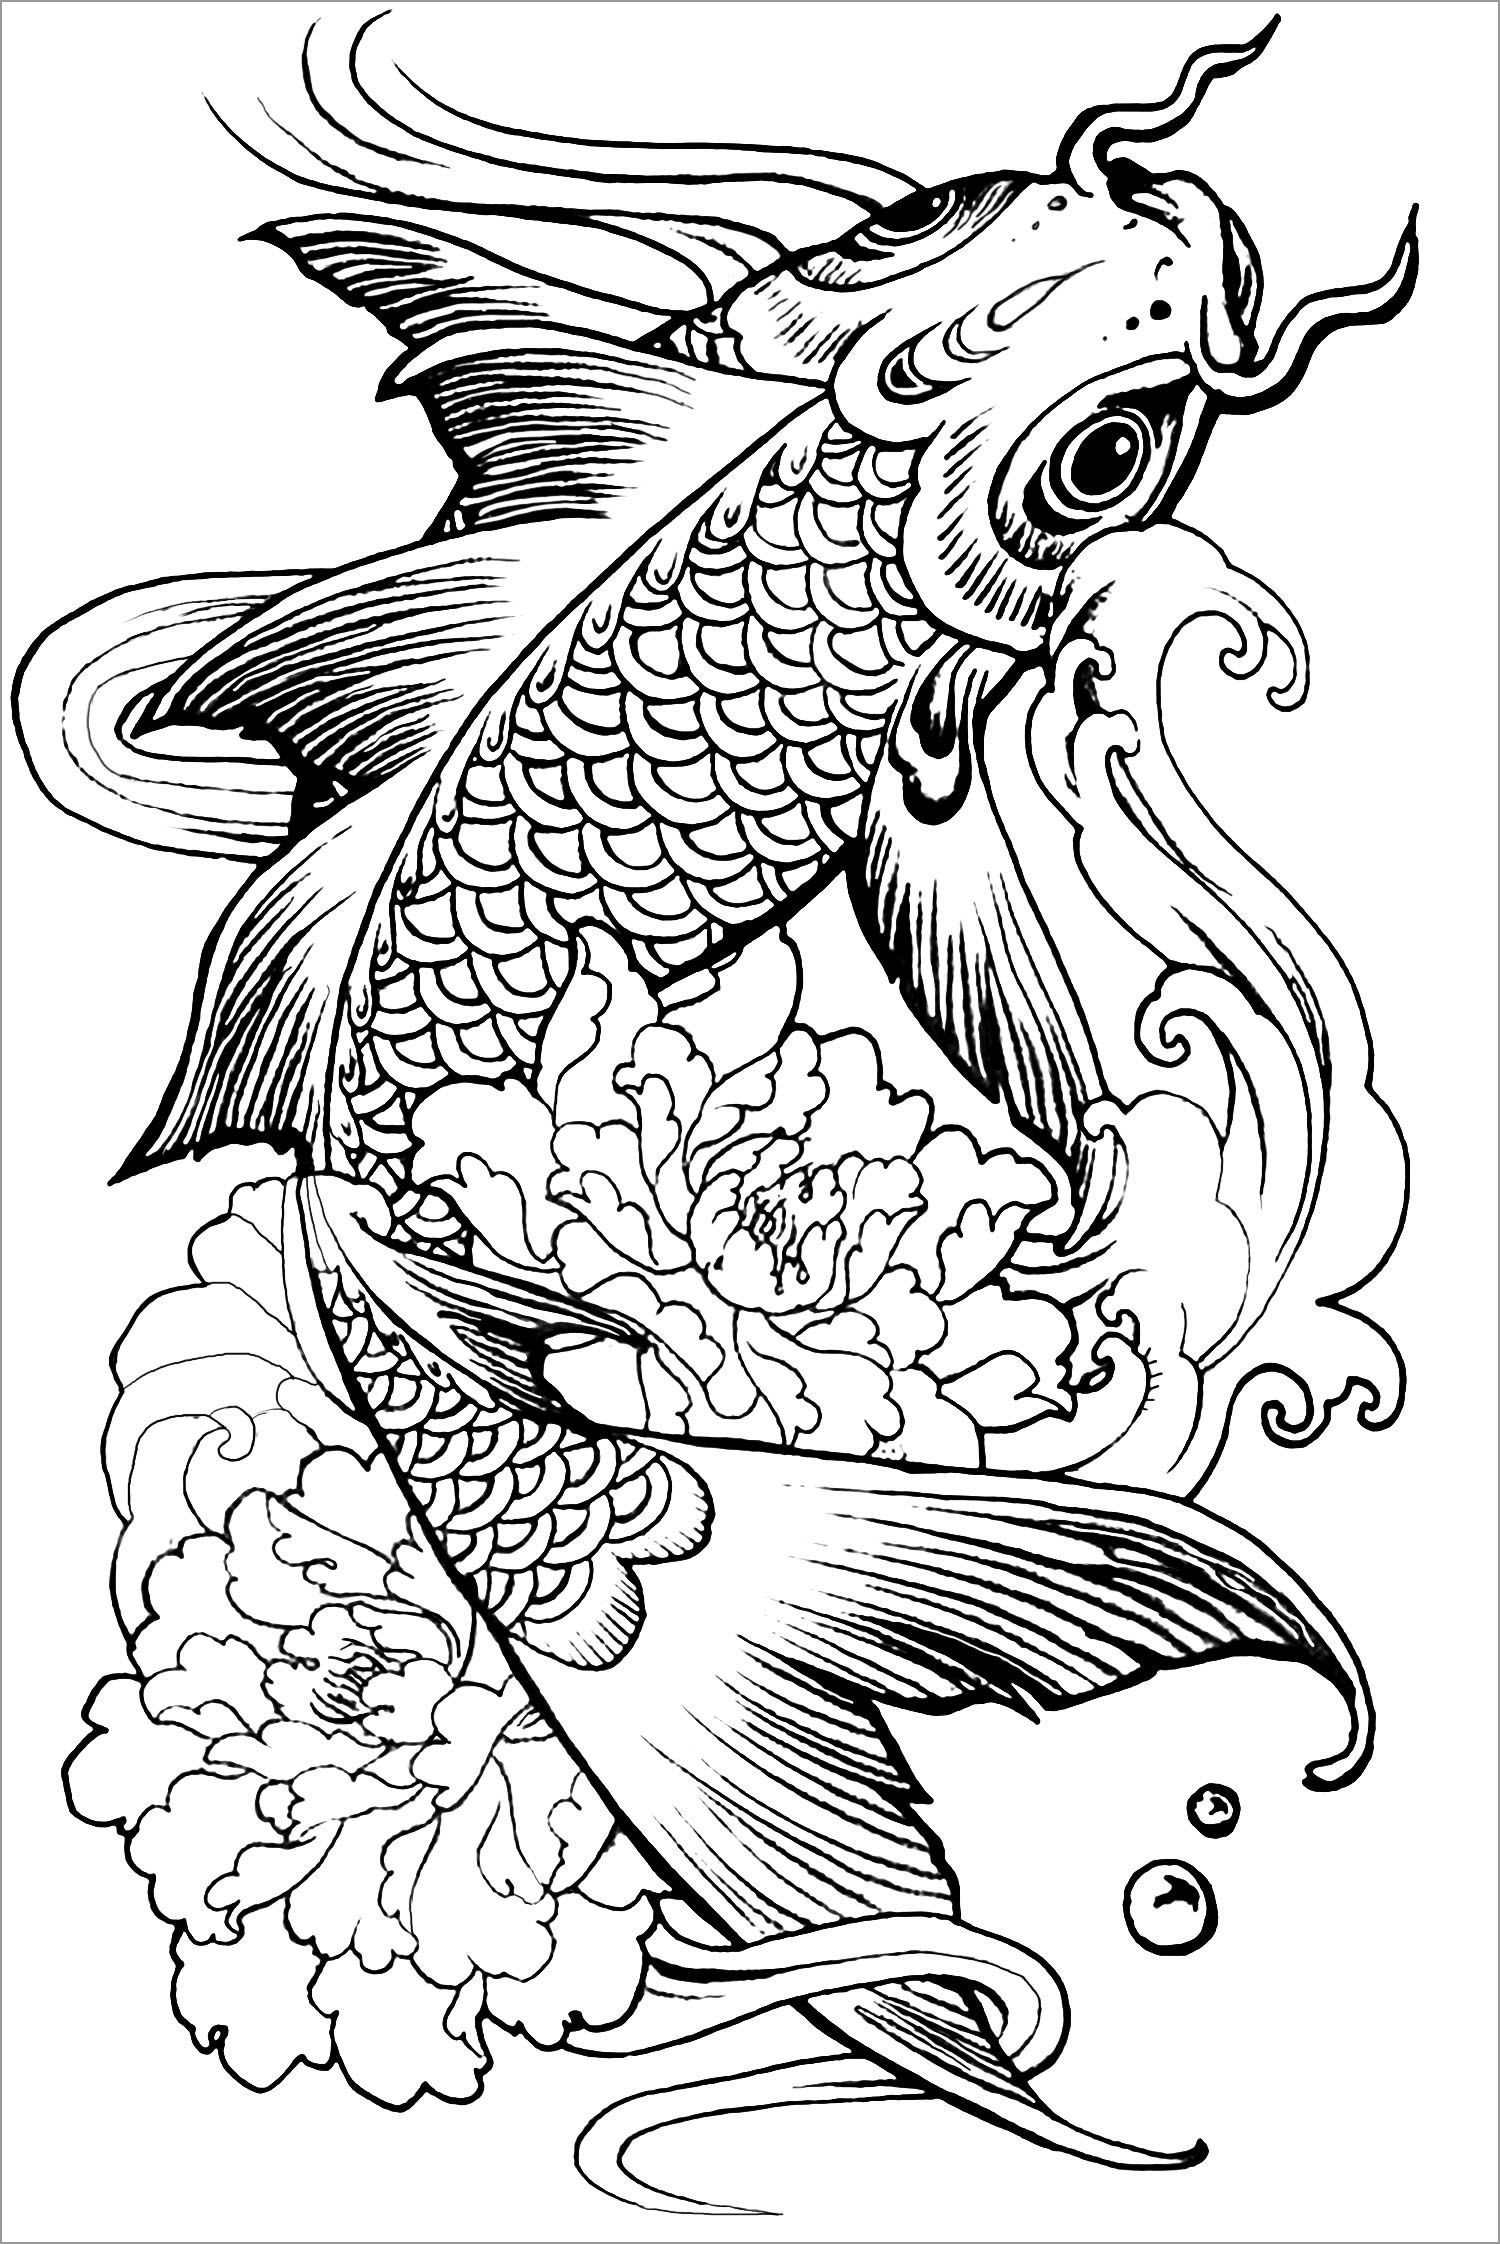 Carp Coloring Page for Adults